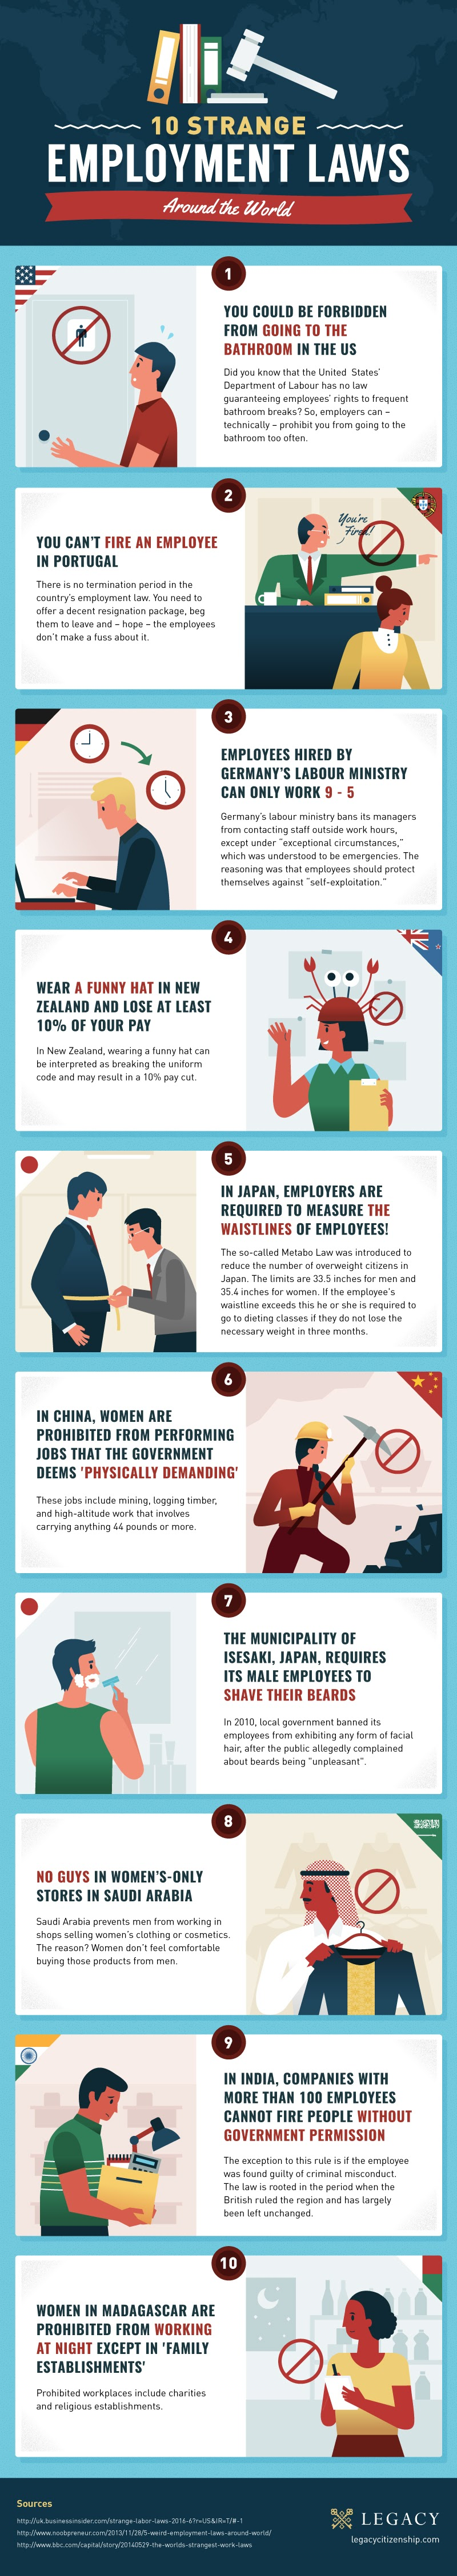 10 strange employment laws around the world #infographic